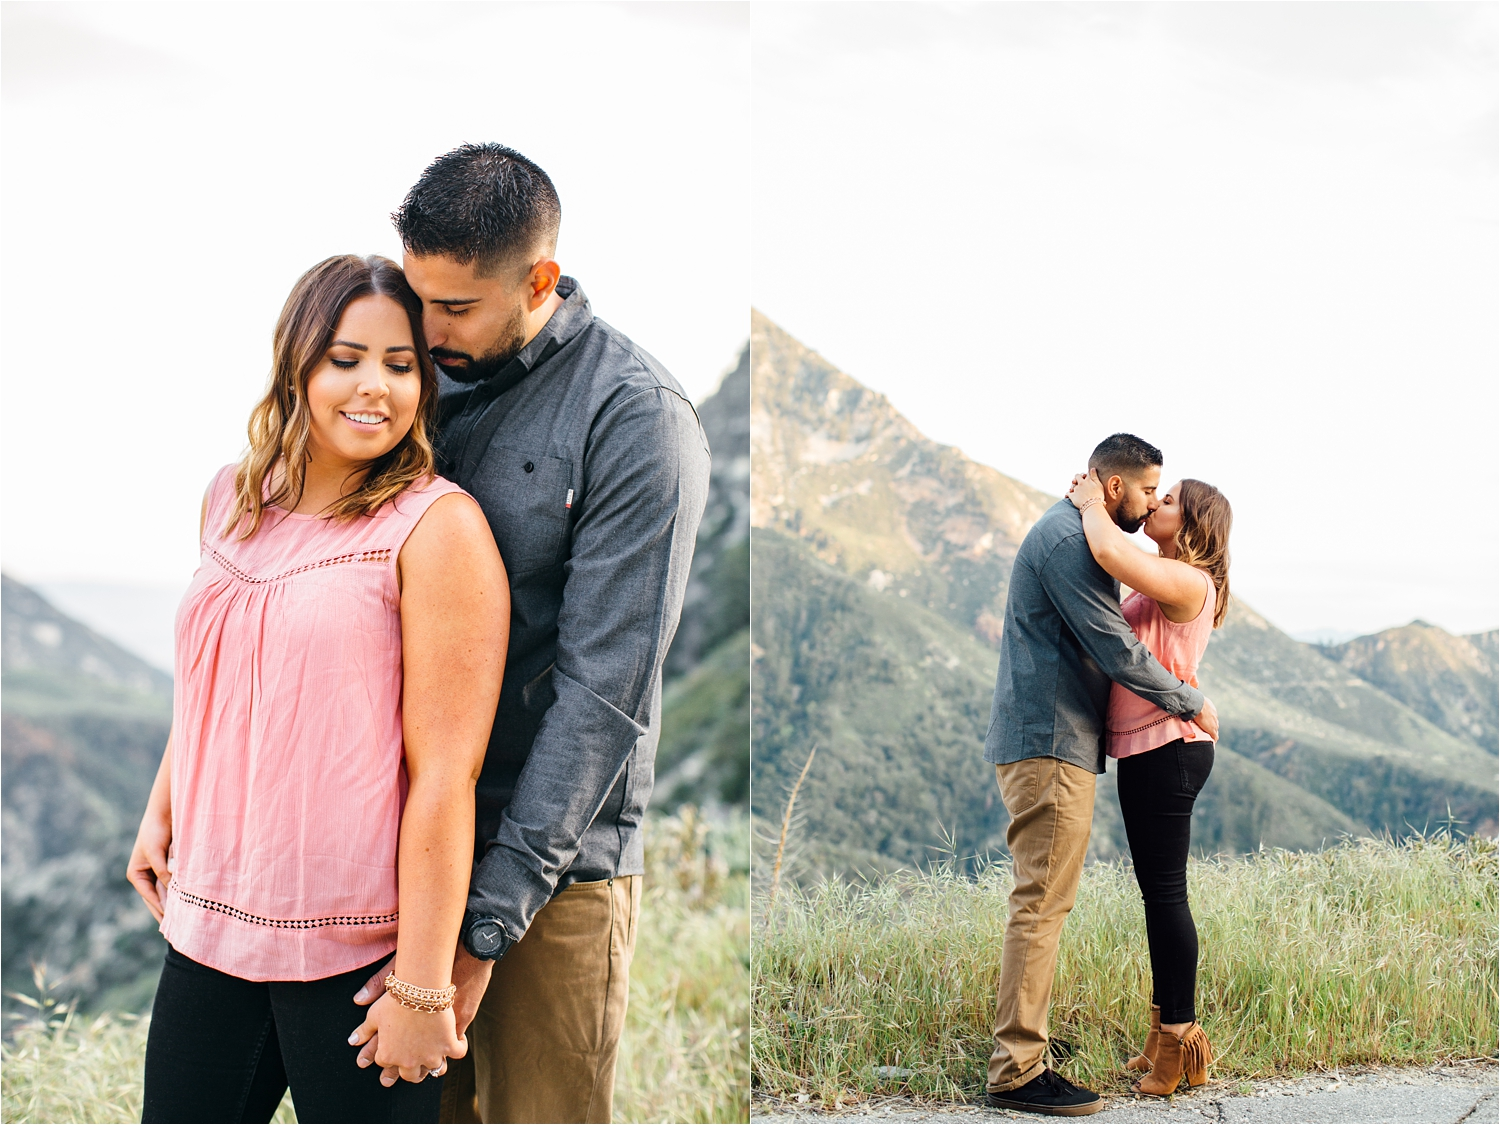 Southern California and Destination Engagement and Wedding Photography - Mountain Engagement Photographer - http://brittneyhannonphotography.com